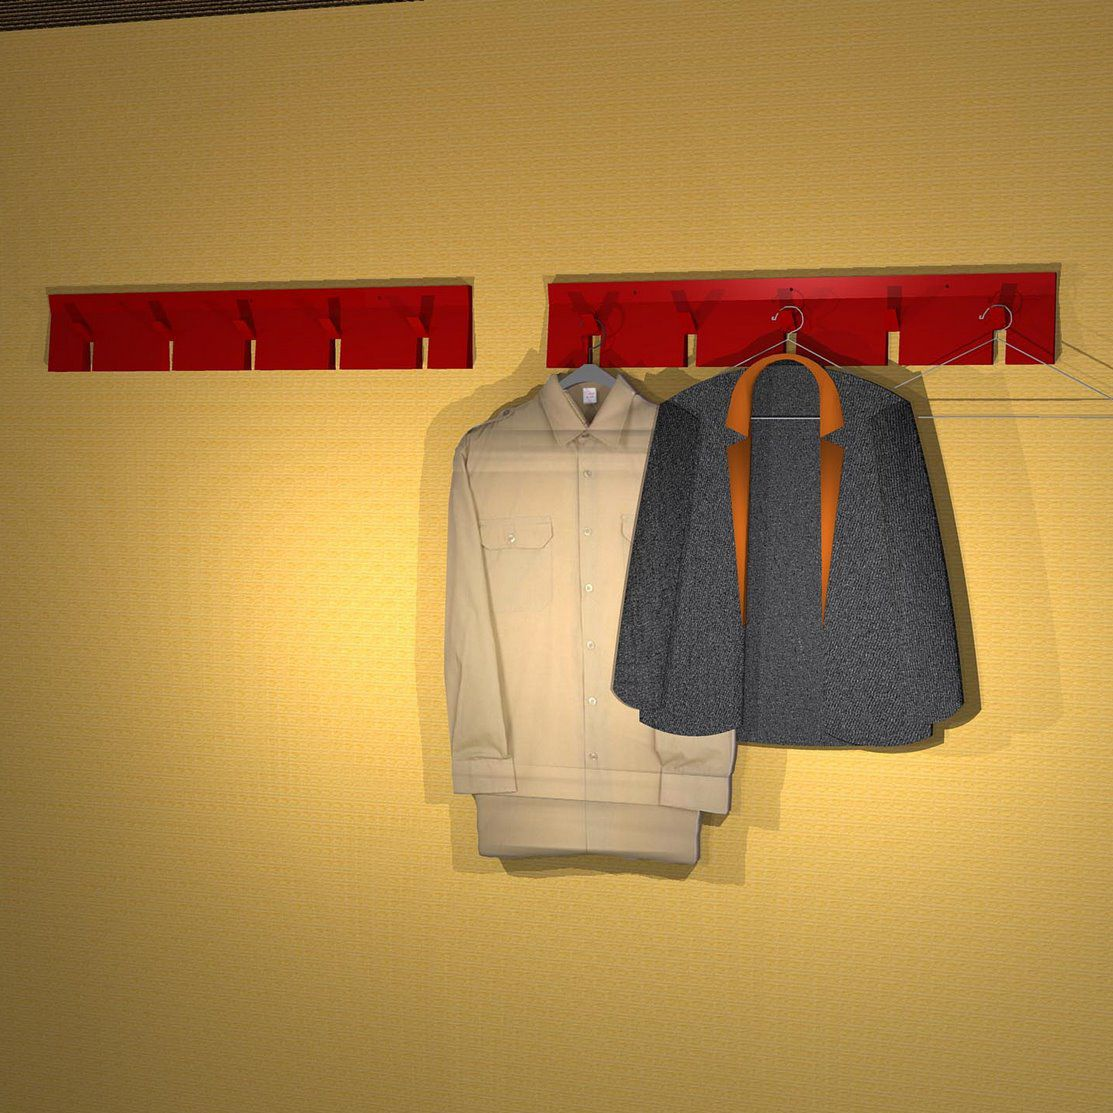 wall mounted coat rack contemporary powder coated steel 2d 3d